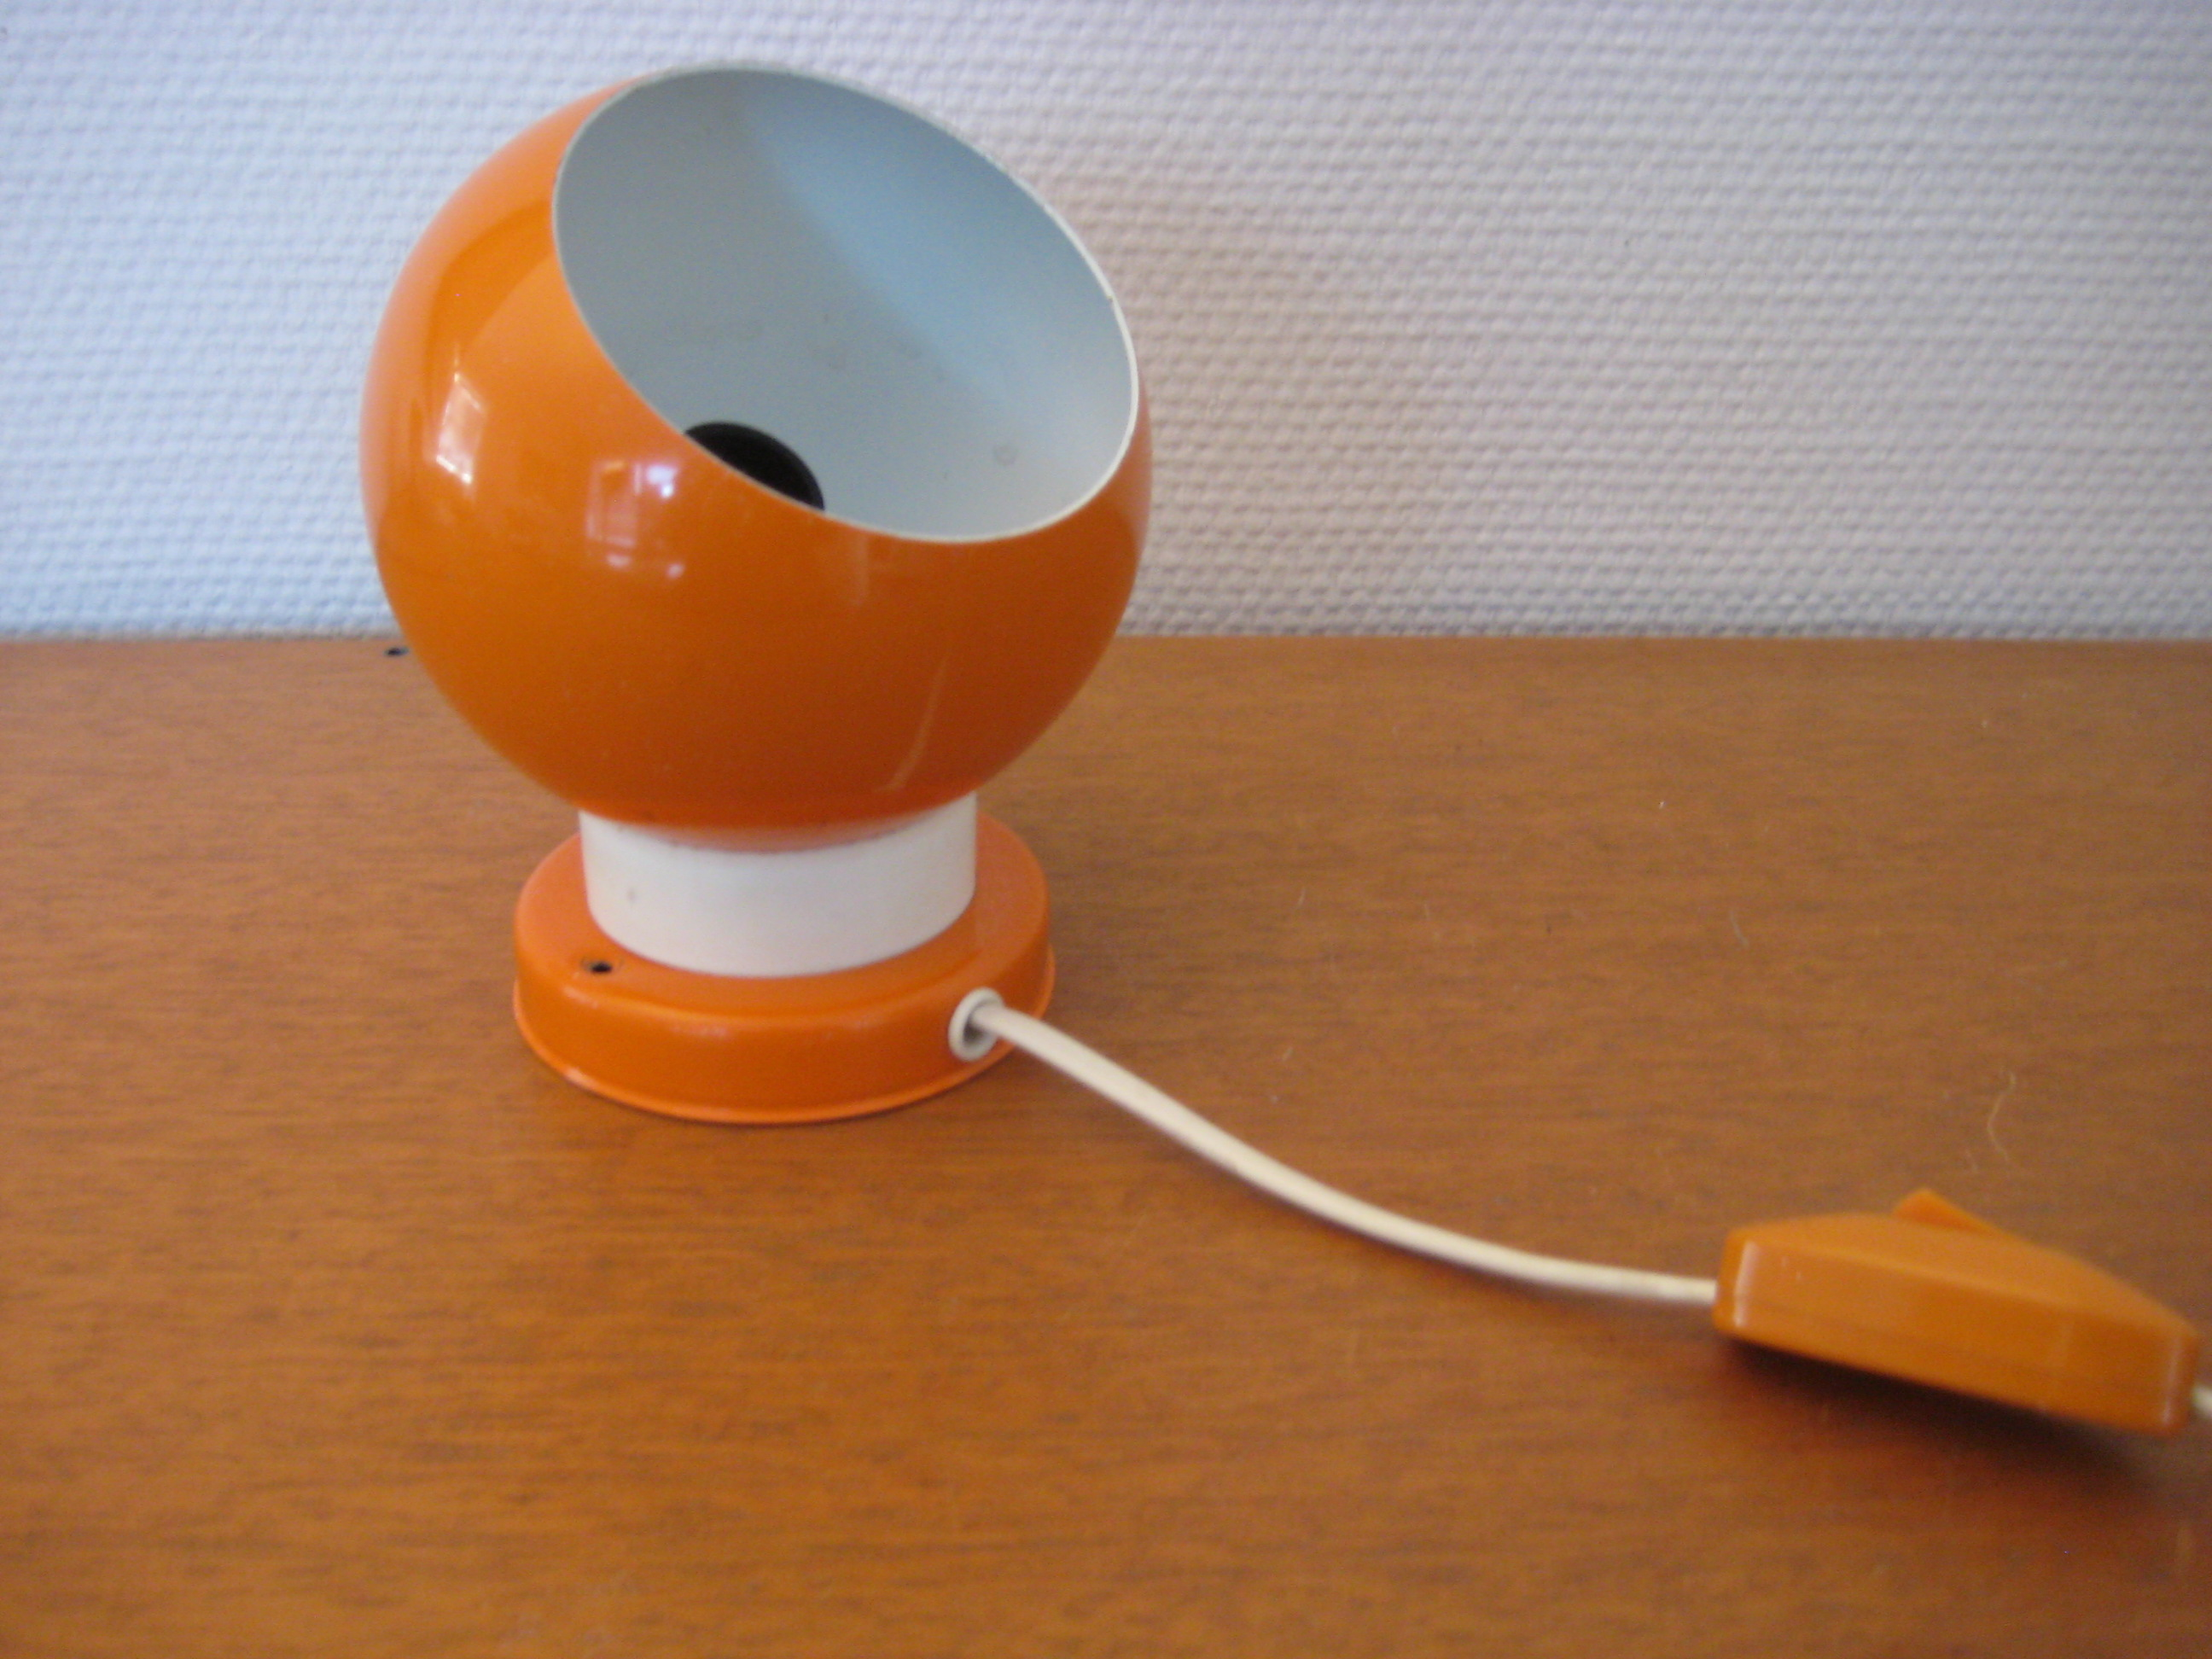 Kuglelampe med magnet, orange